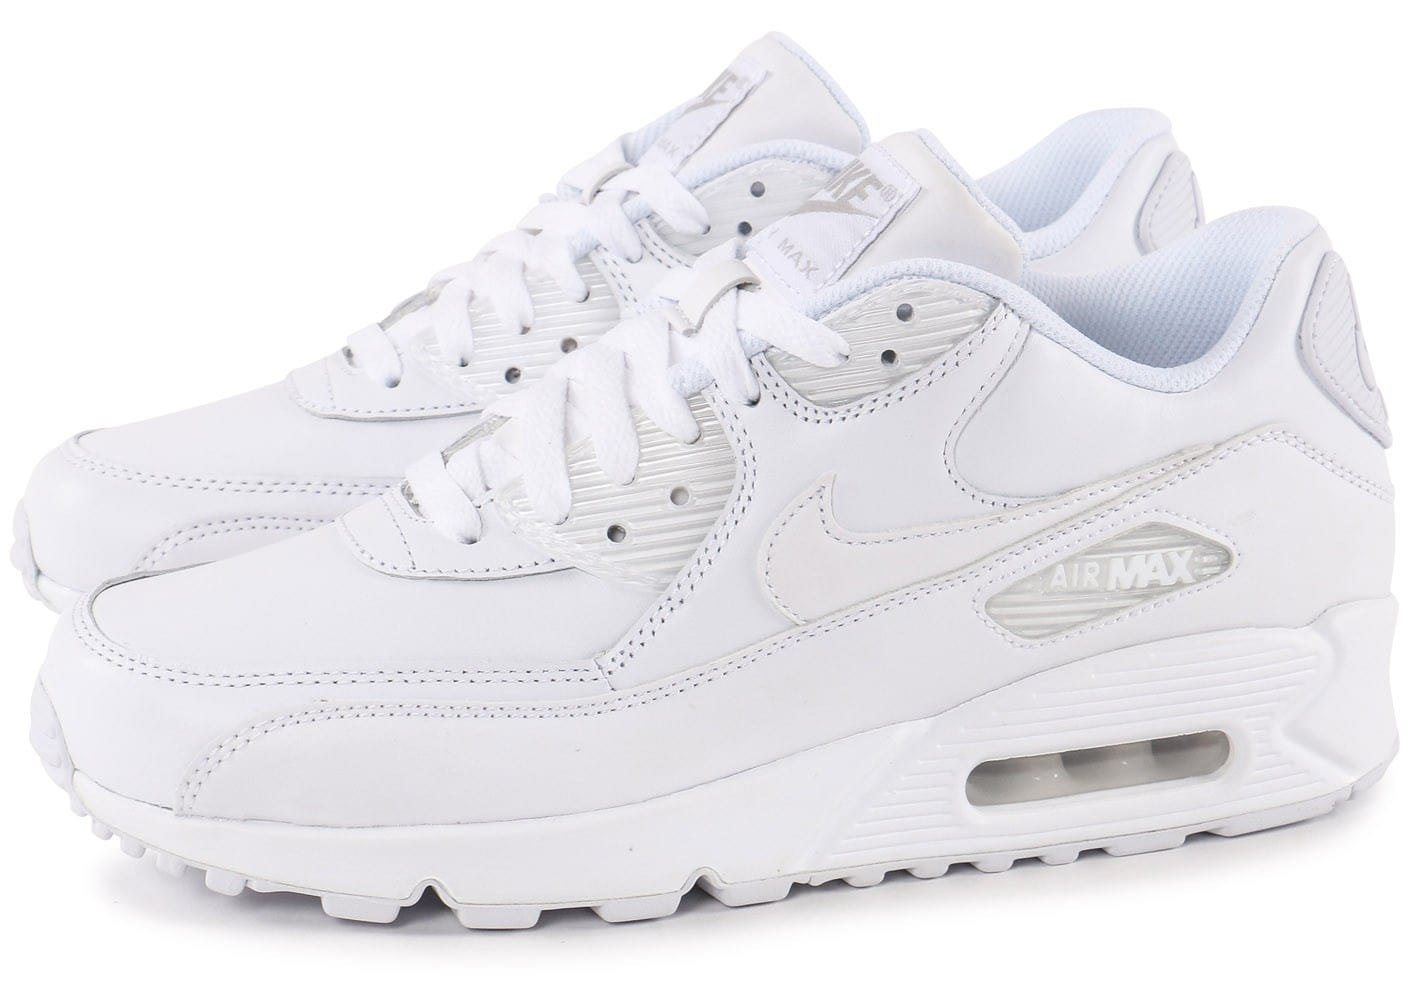 factory price factory outlets new cheap air max 90 leather blanche